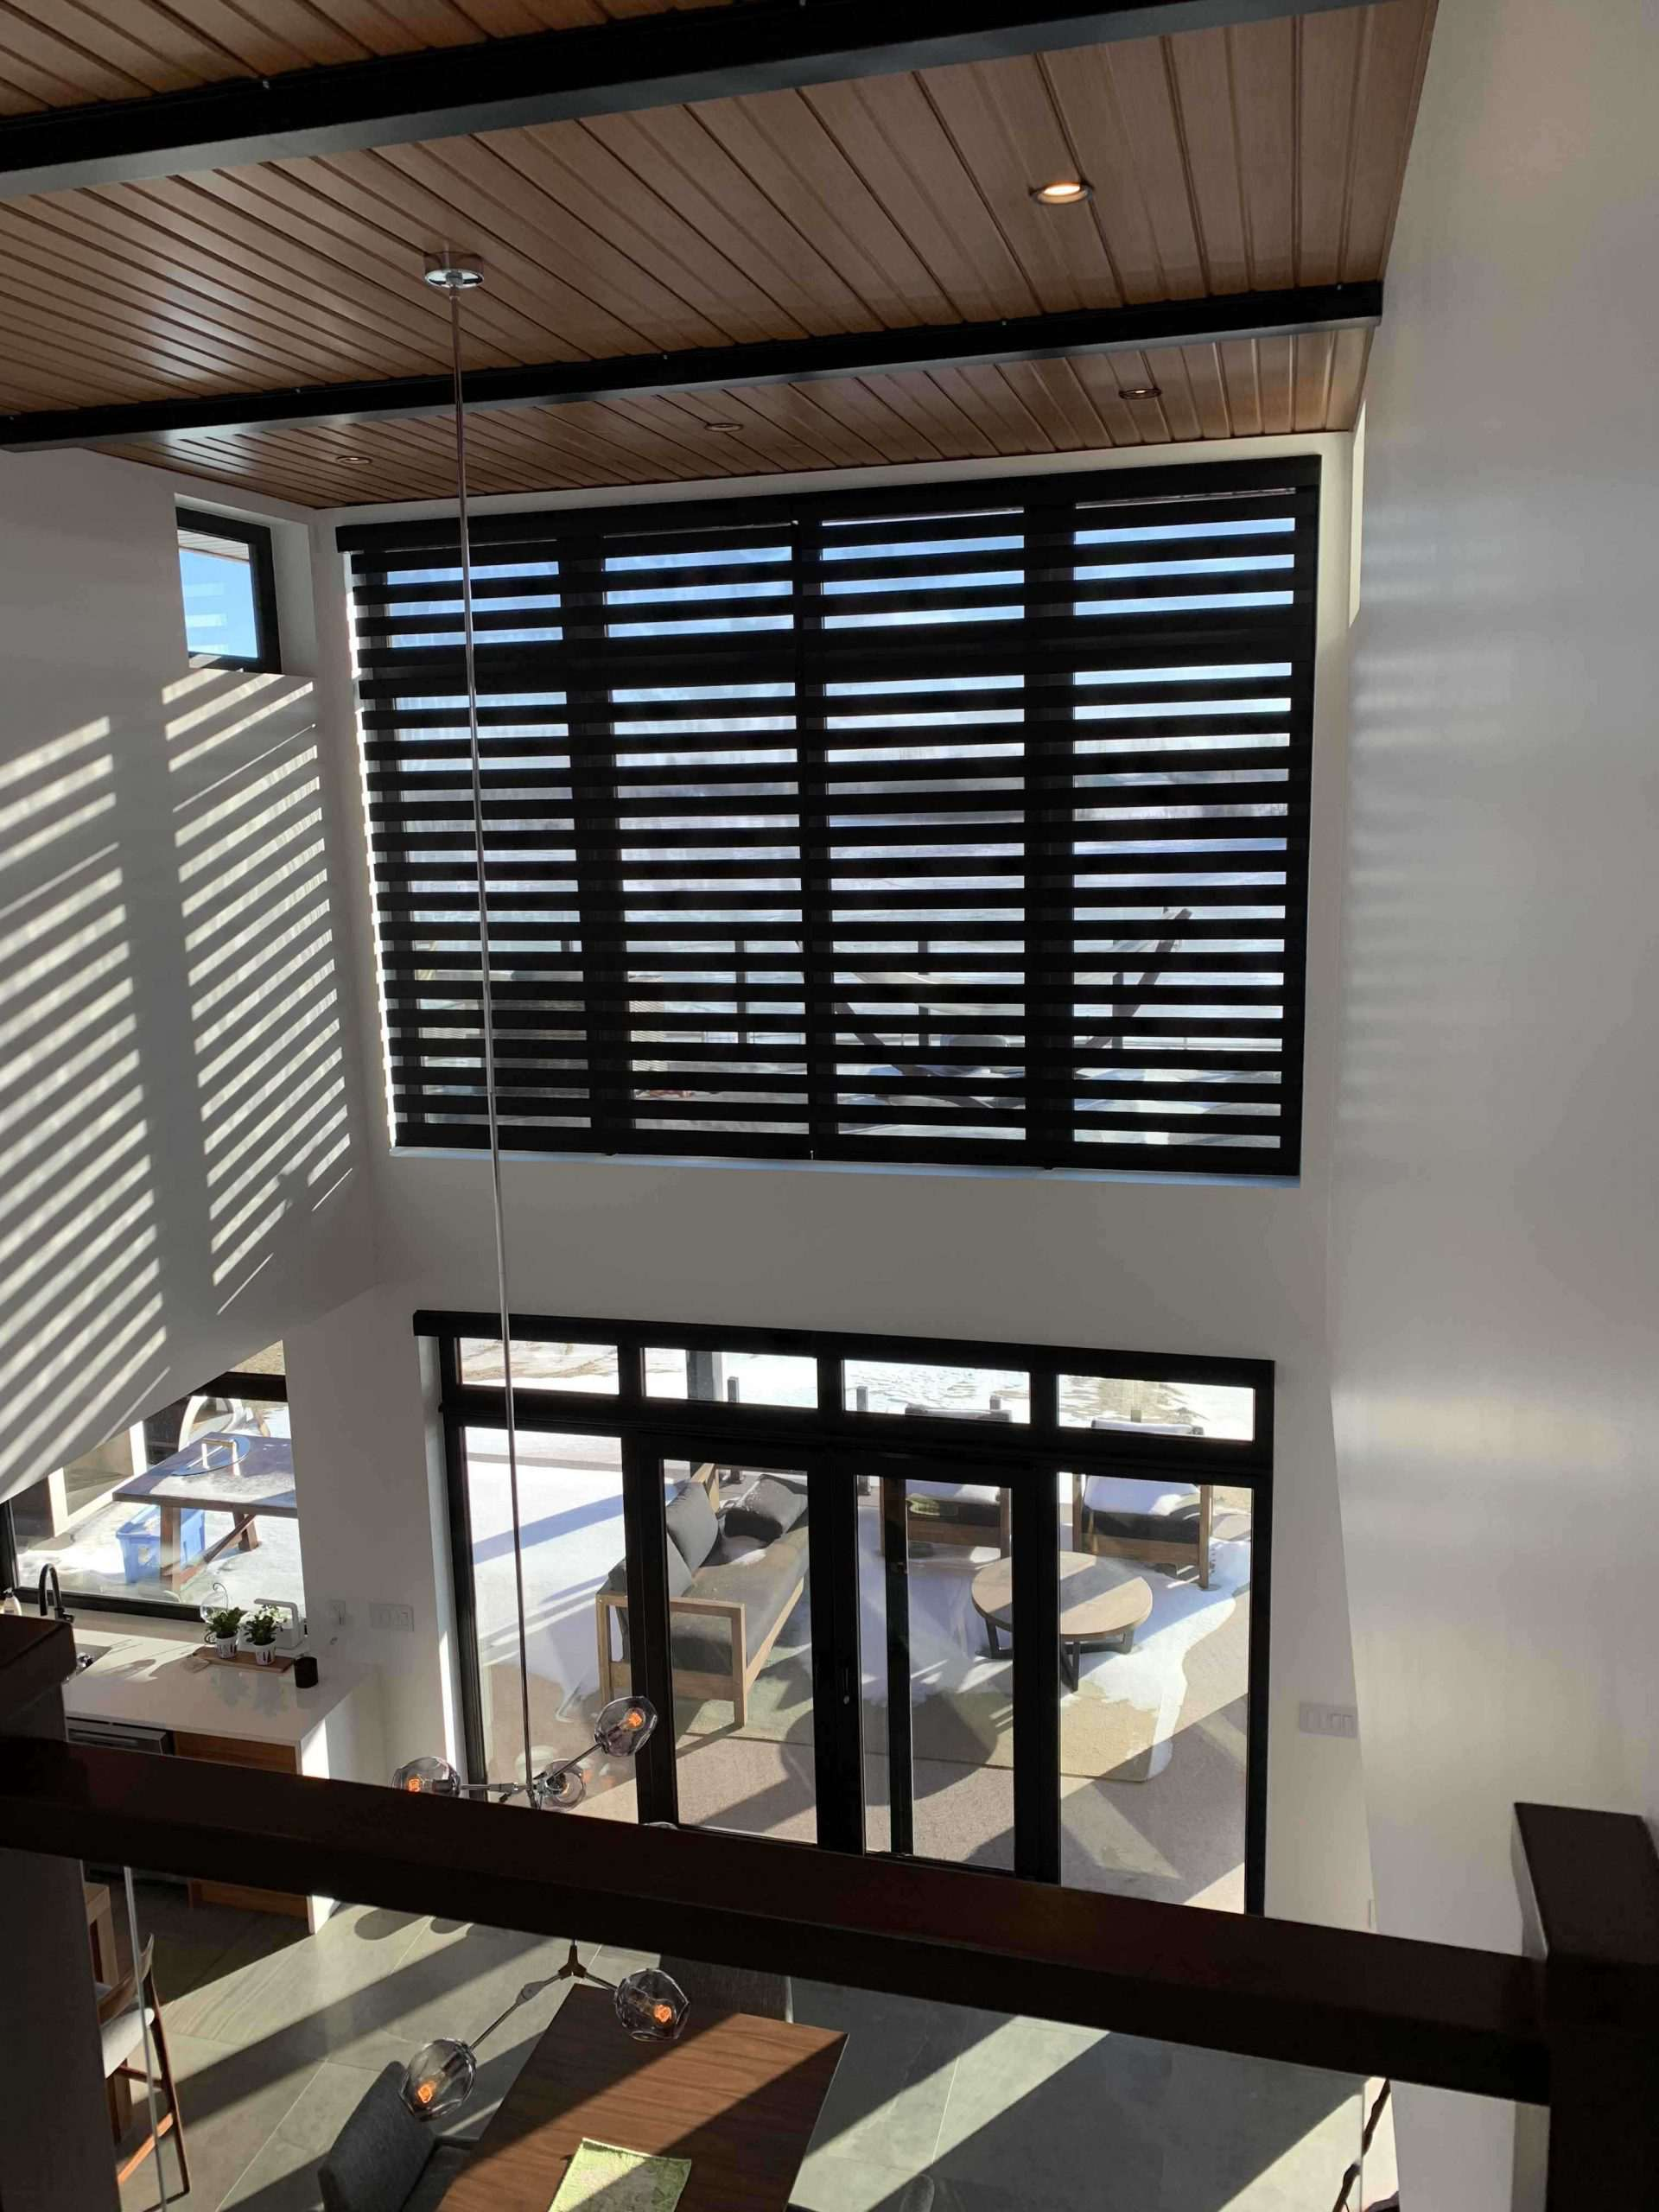 Indoor view of grand scale motorized blinds on second story window of a home over the patio doors to the back deck.